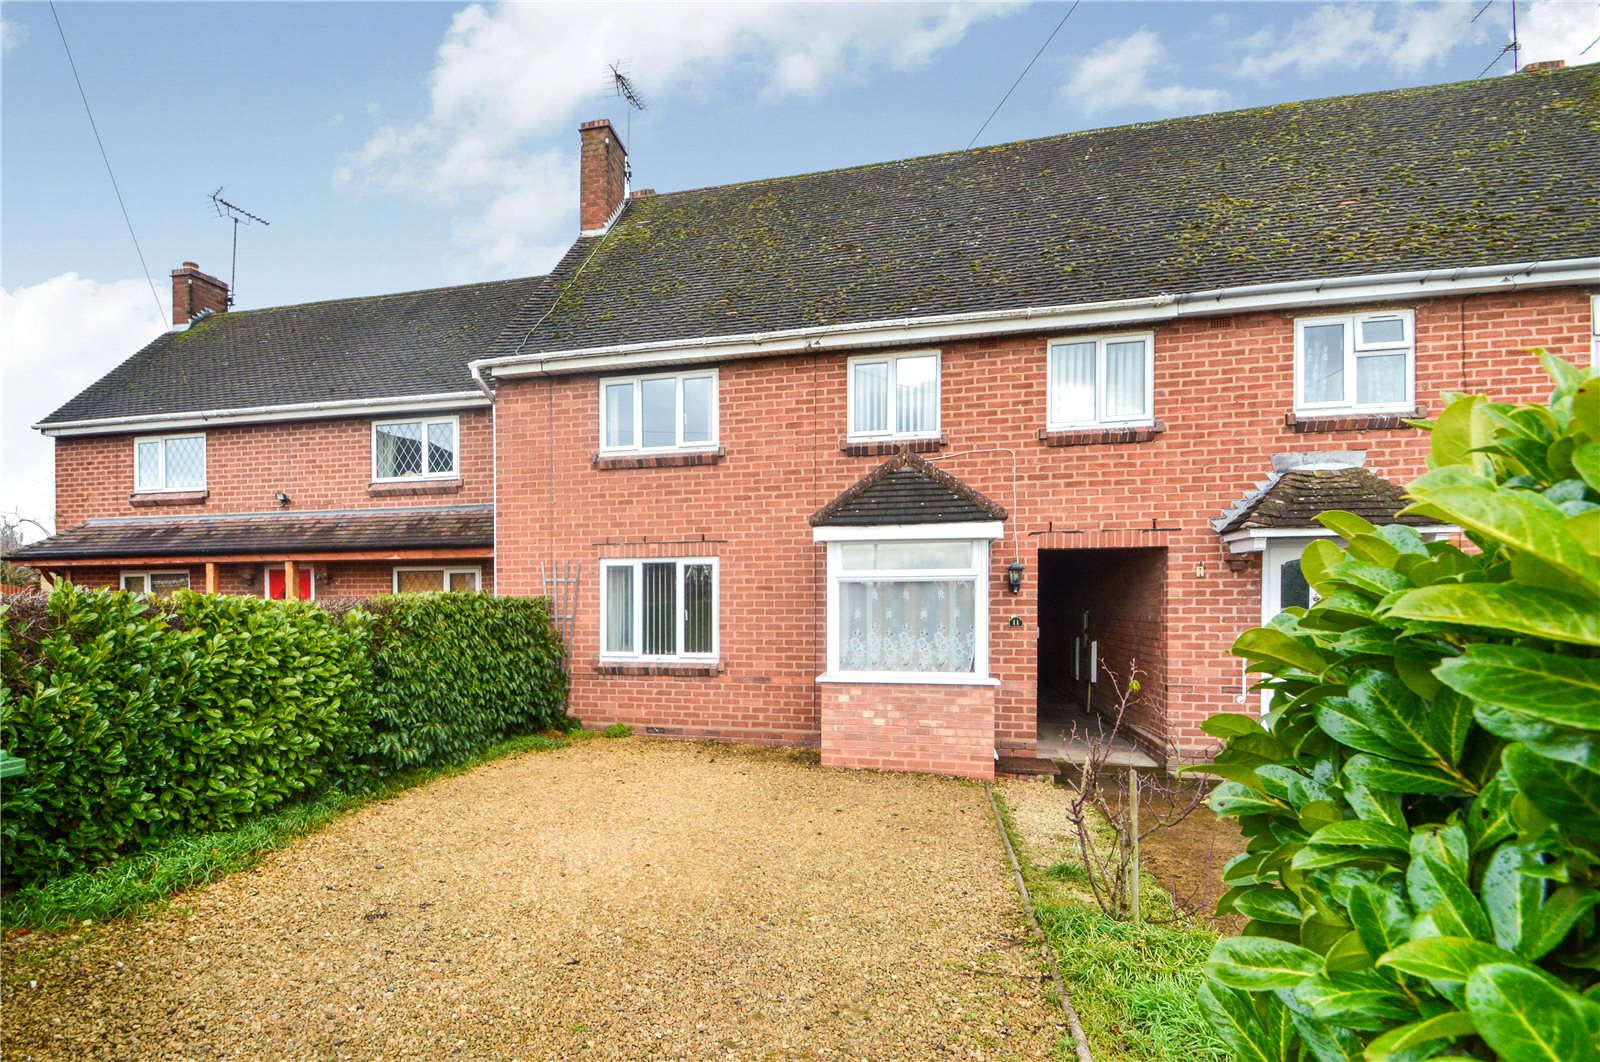 4 Bedrooms Terraced House for sale in 11 Shrubbery Close, Cookley, Kidderminster, DY10